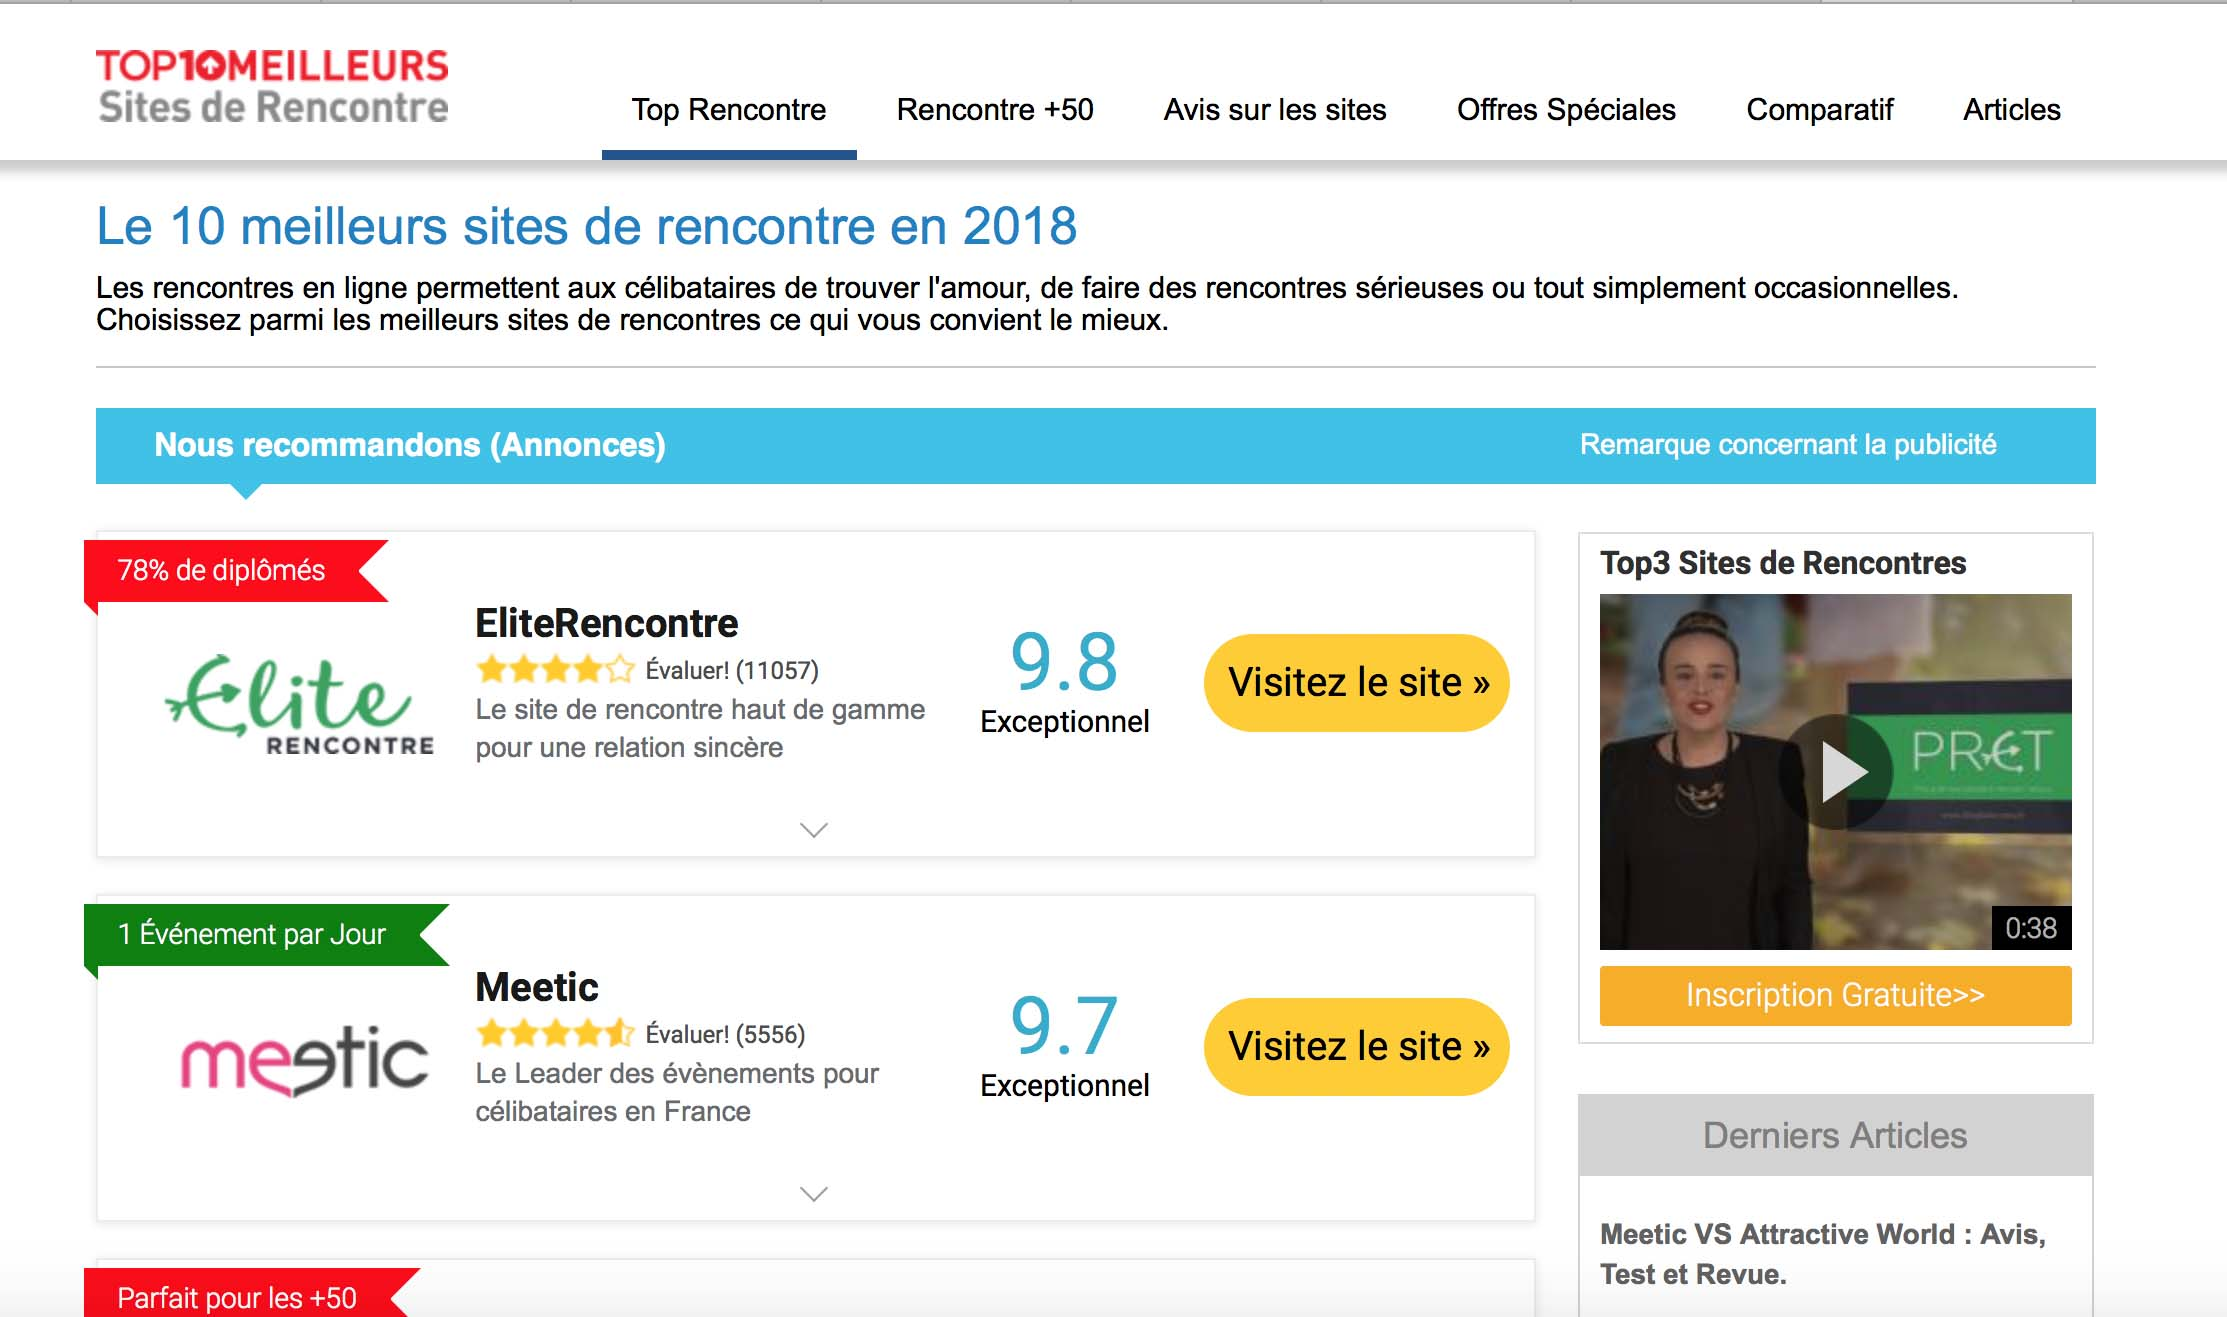 sites de rencontres gratuits comparateur de site de rencontre